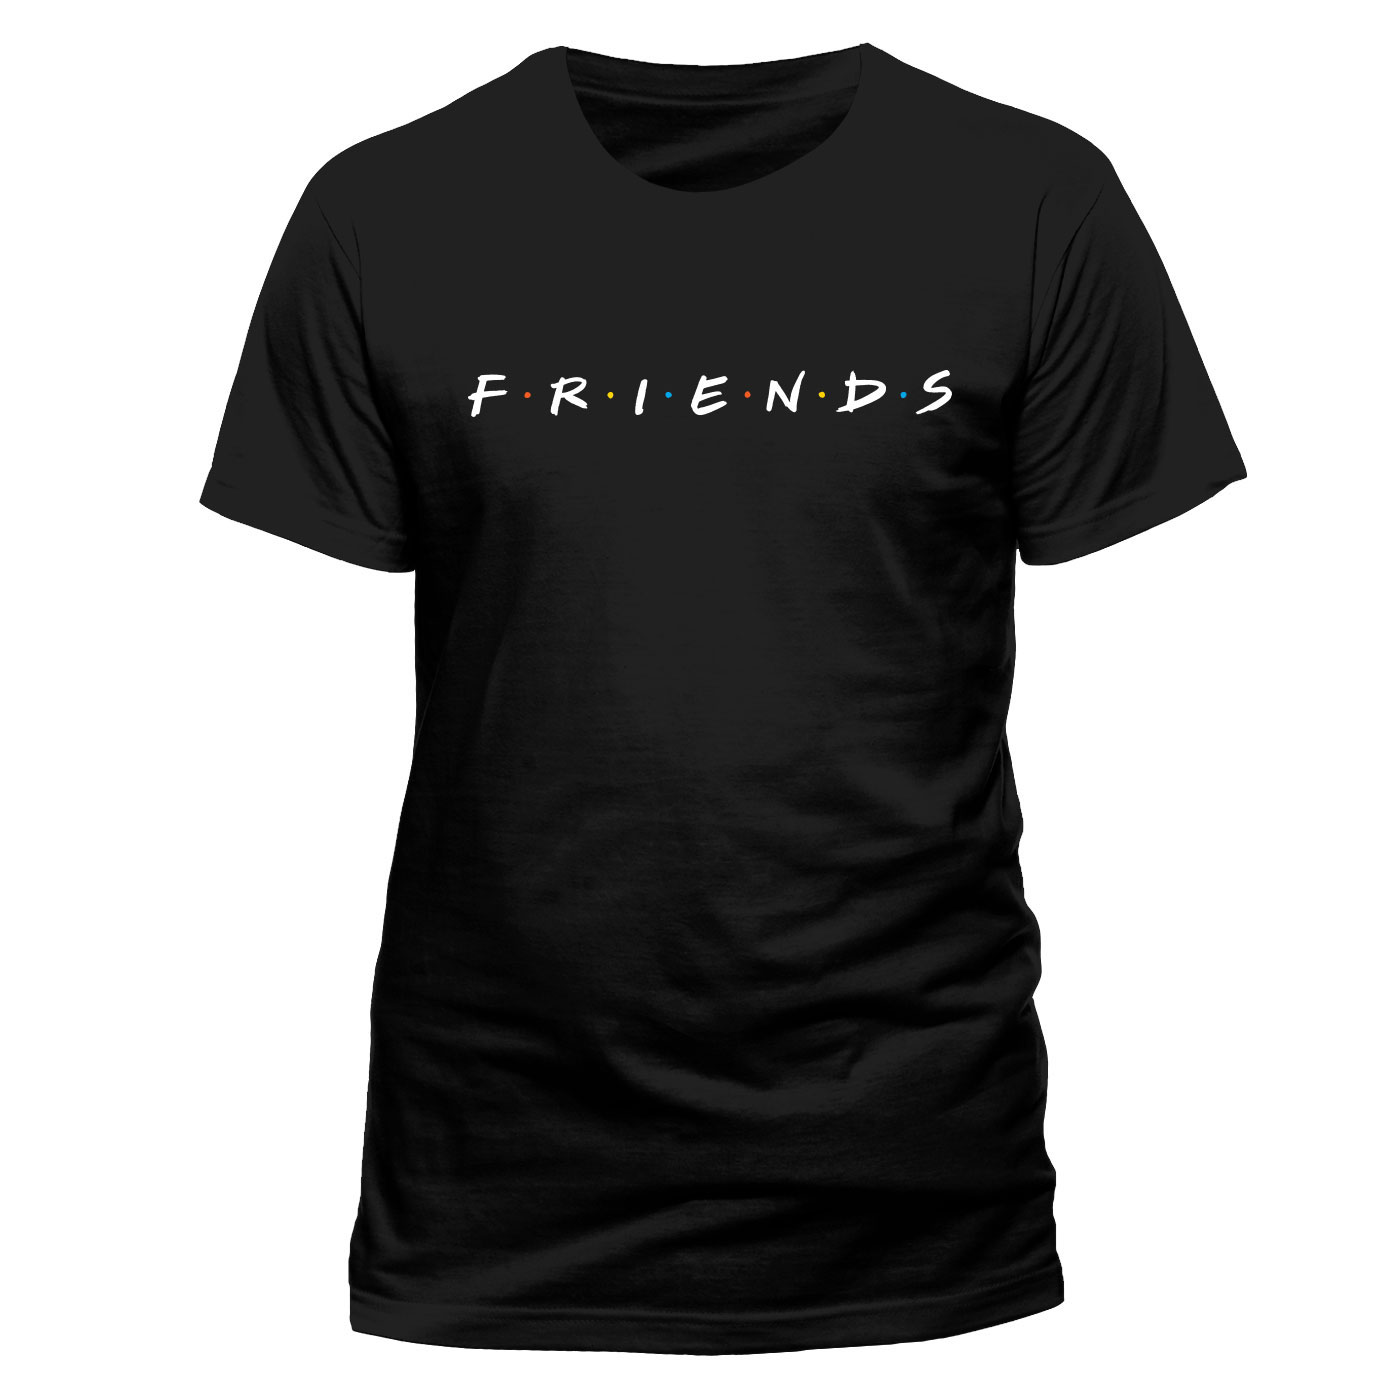 Friends T-Shirt Logo Size L